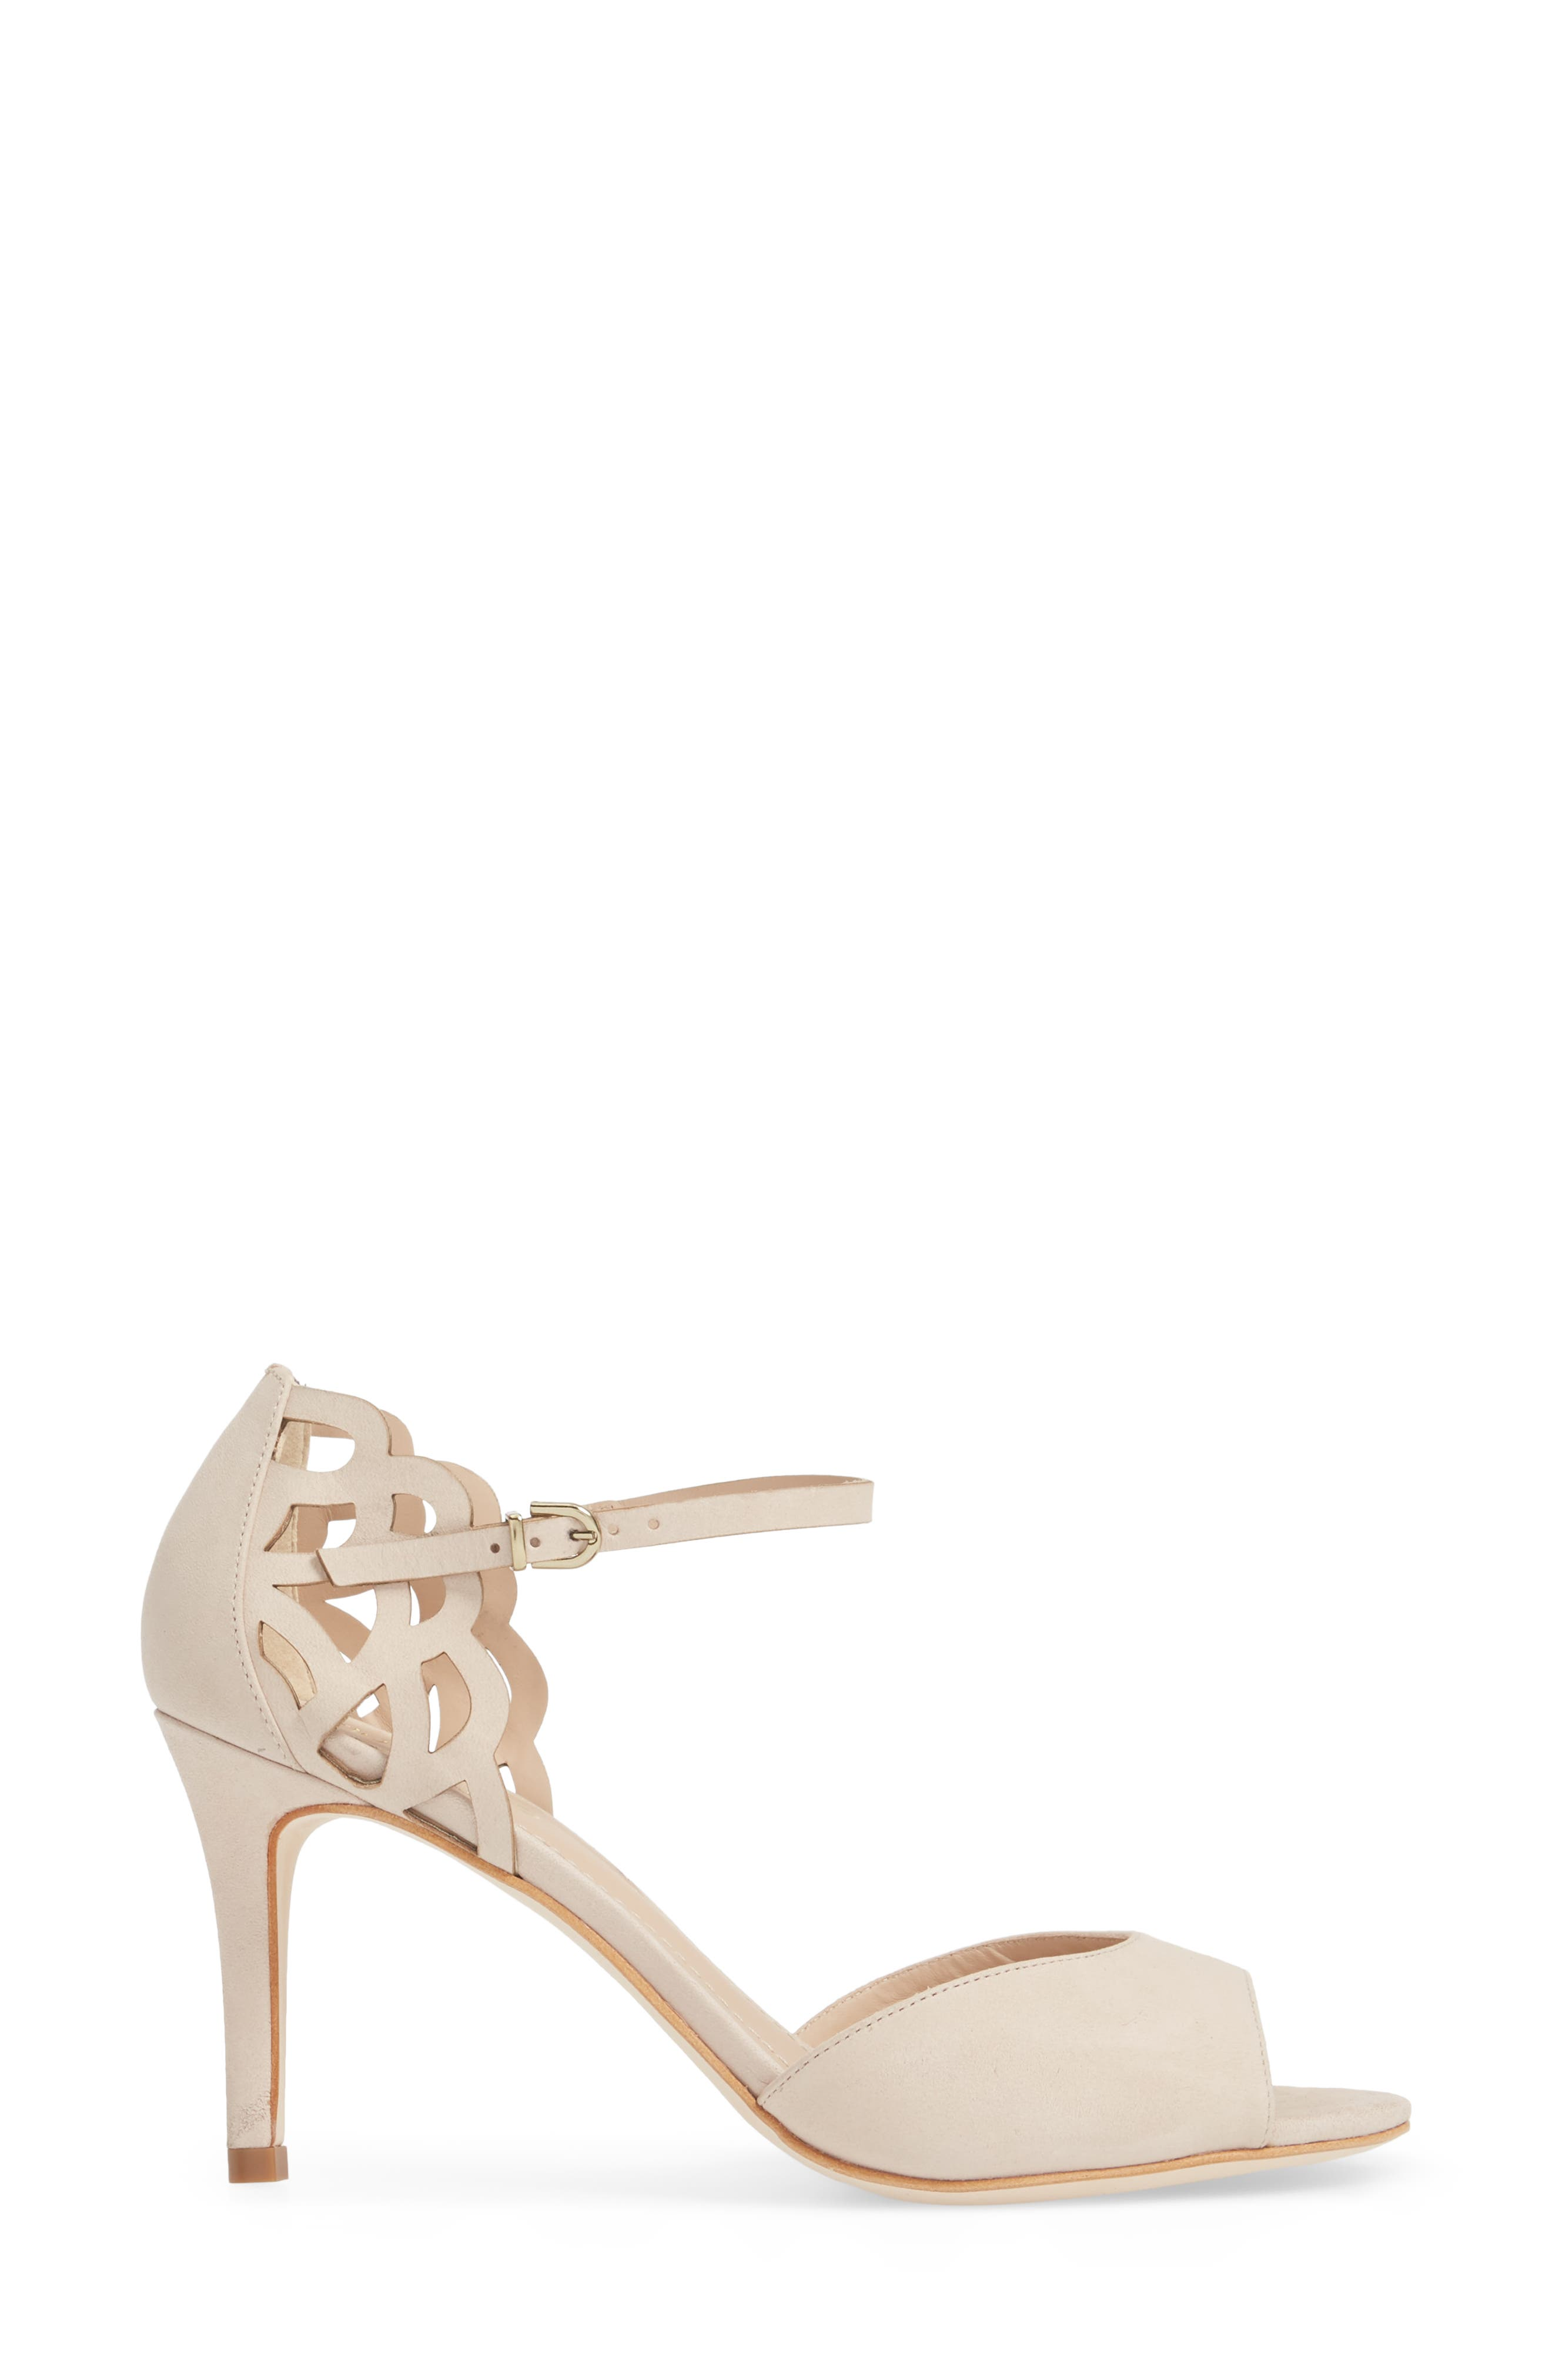 Adalie Sandal,                             Alternate thumbnail 3, color,                             Nude Leather